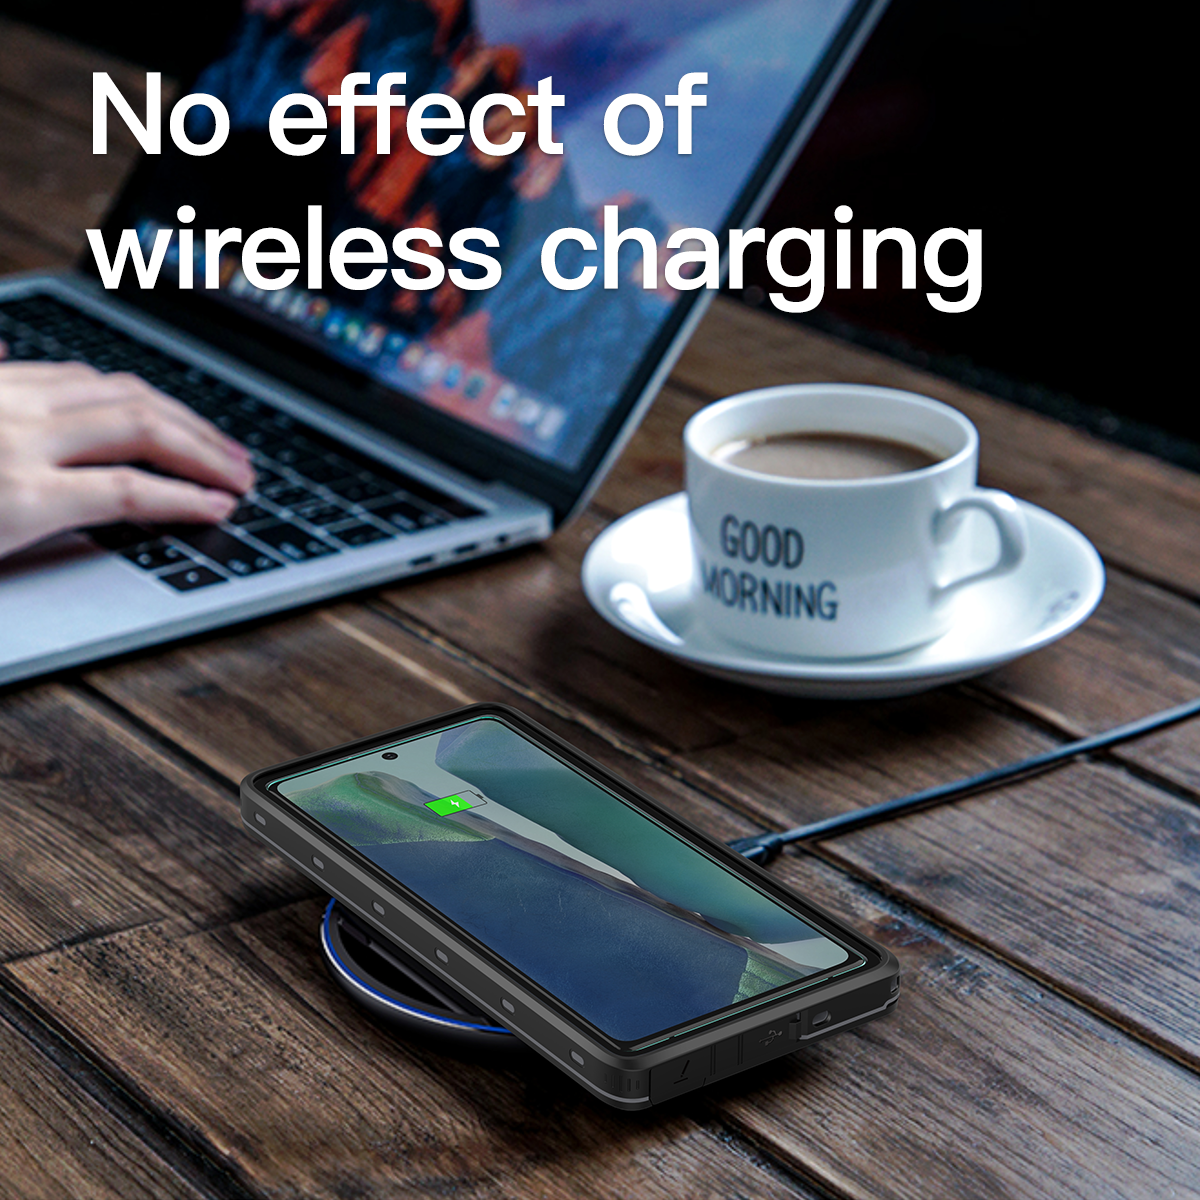 Samsung note 20 waterproof cases support wireless charging